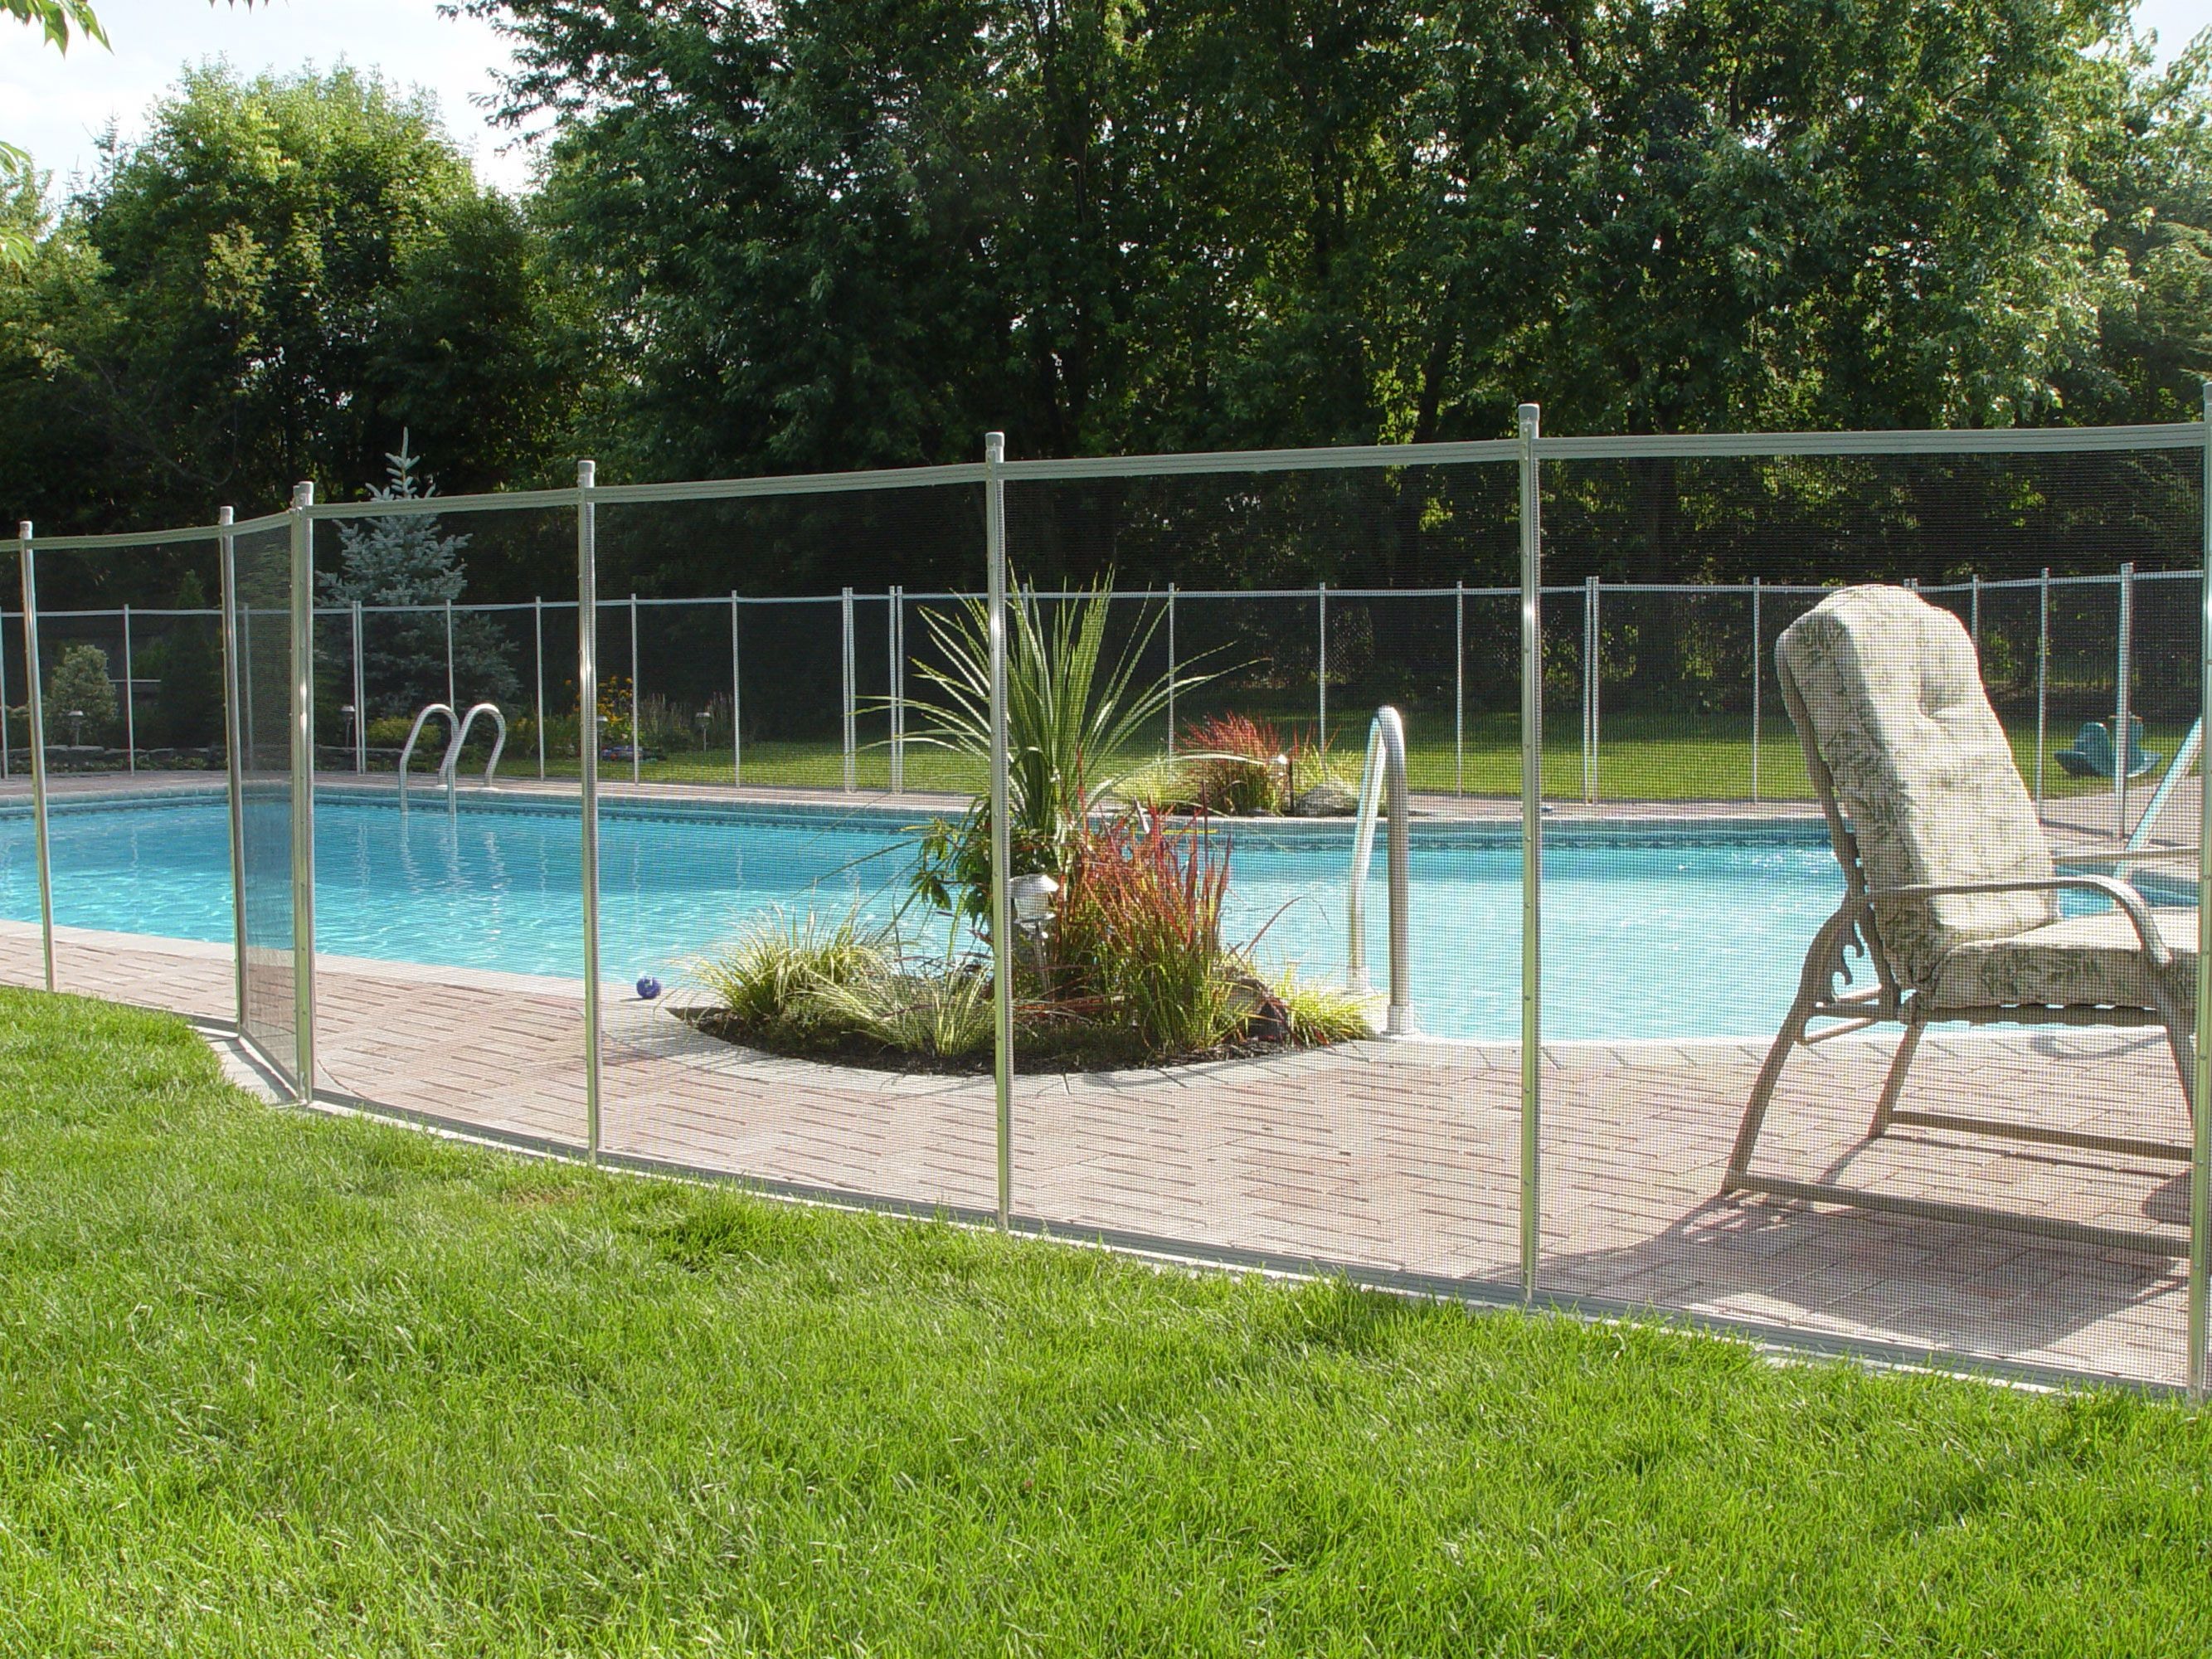 florida landscape design ideas landscaping ideas around pool fence - Garden Ideas Around Swimming Pools